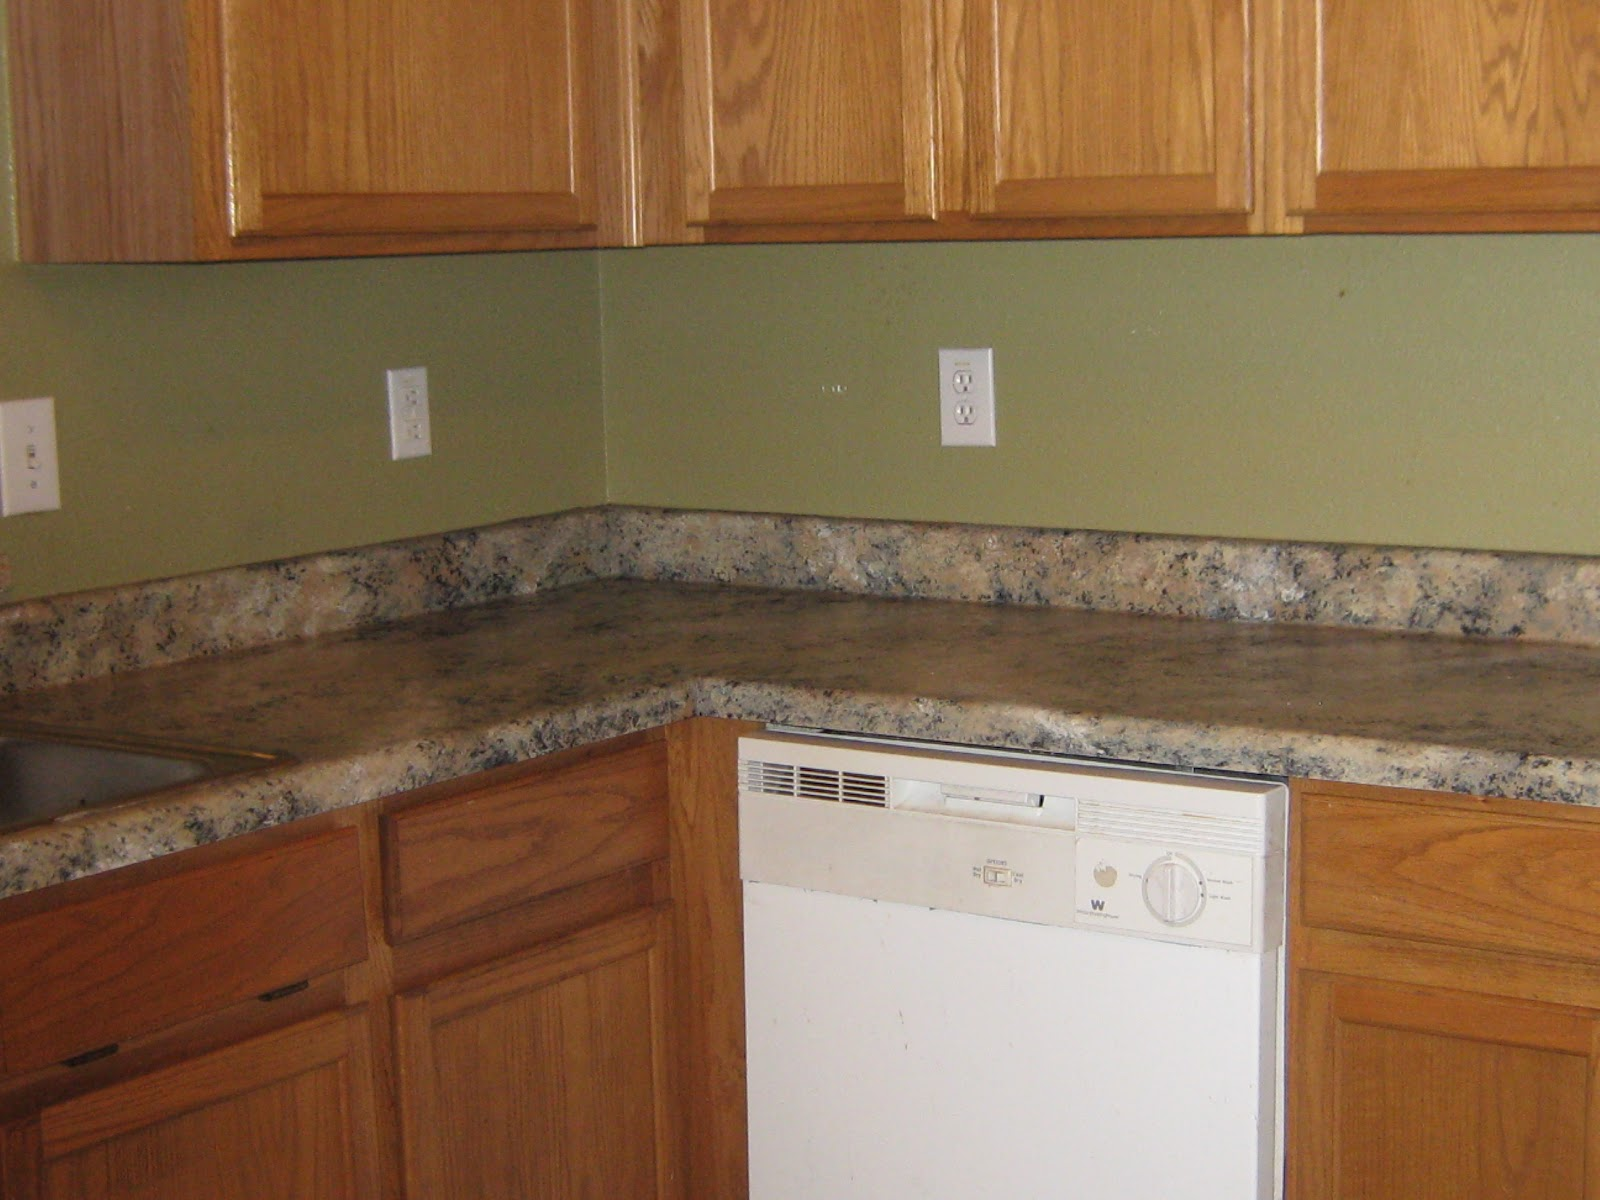 ... DECORATIVE ARTISAN: PAINTING FORMICA TO LOOK LIKE GRANITE (Part II